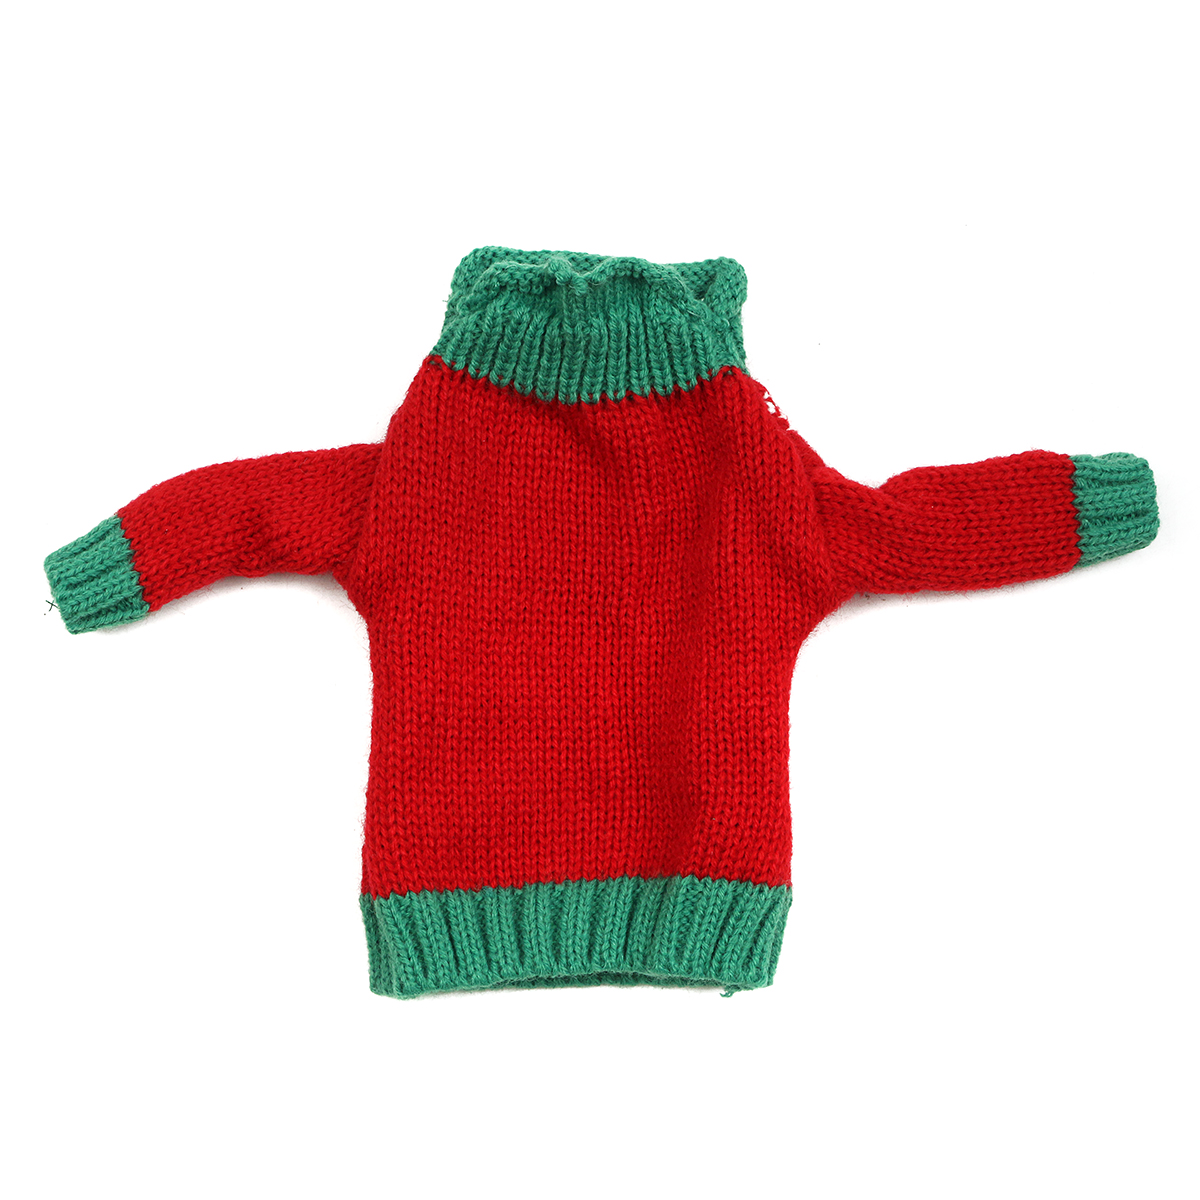 Christmas Knitted Sweater Lid Hat Wine Bottle Cover Wrap Bag Xmas Decoration - Photo: 11